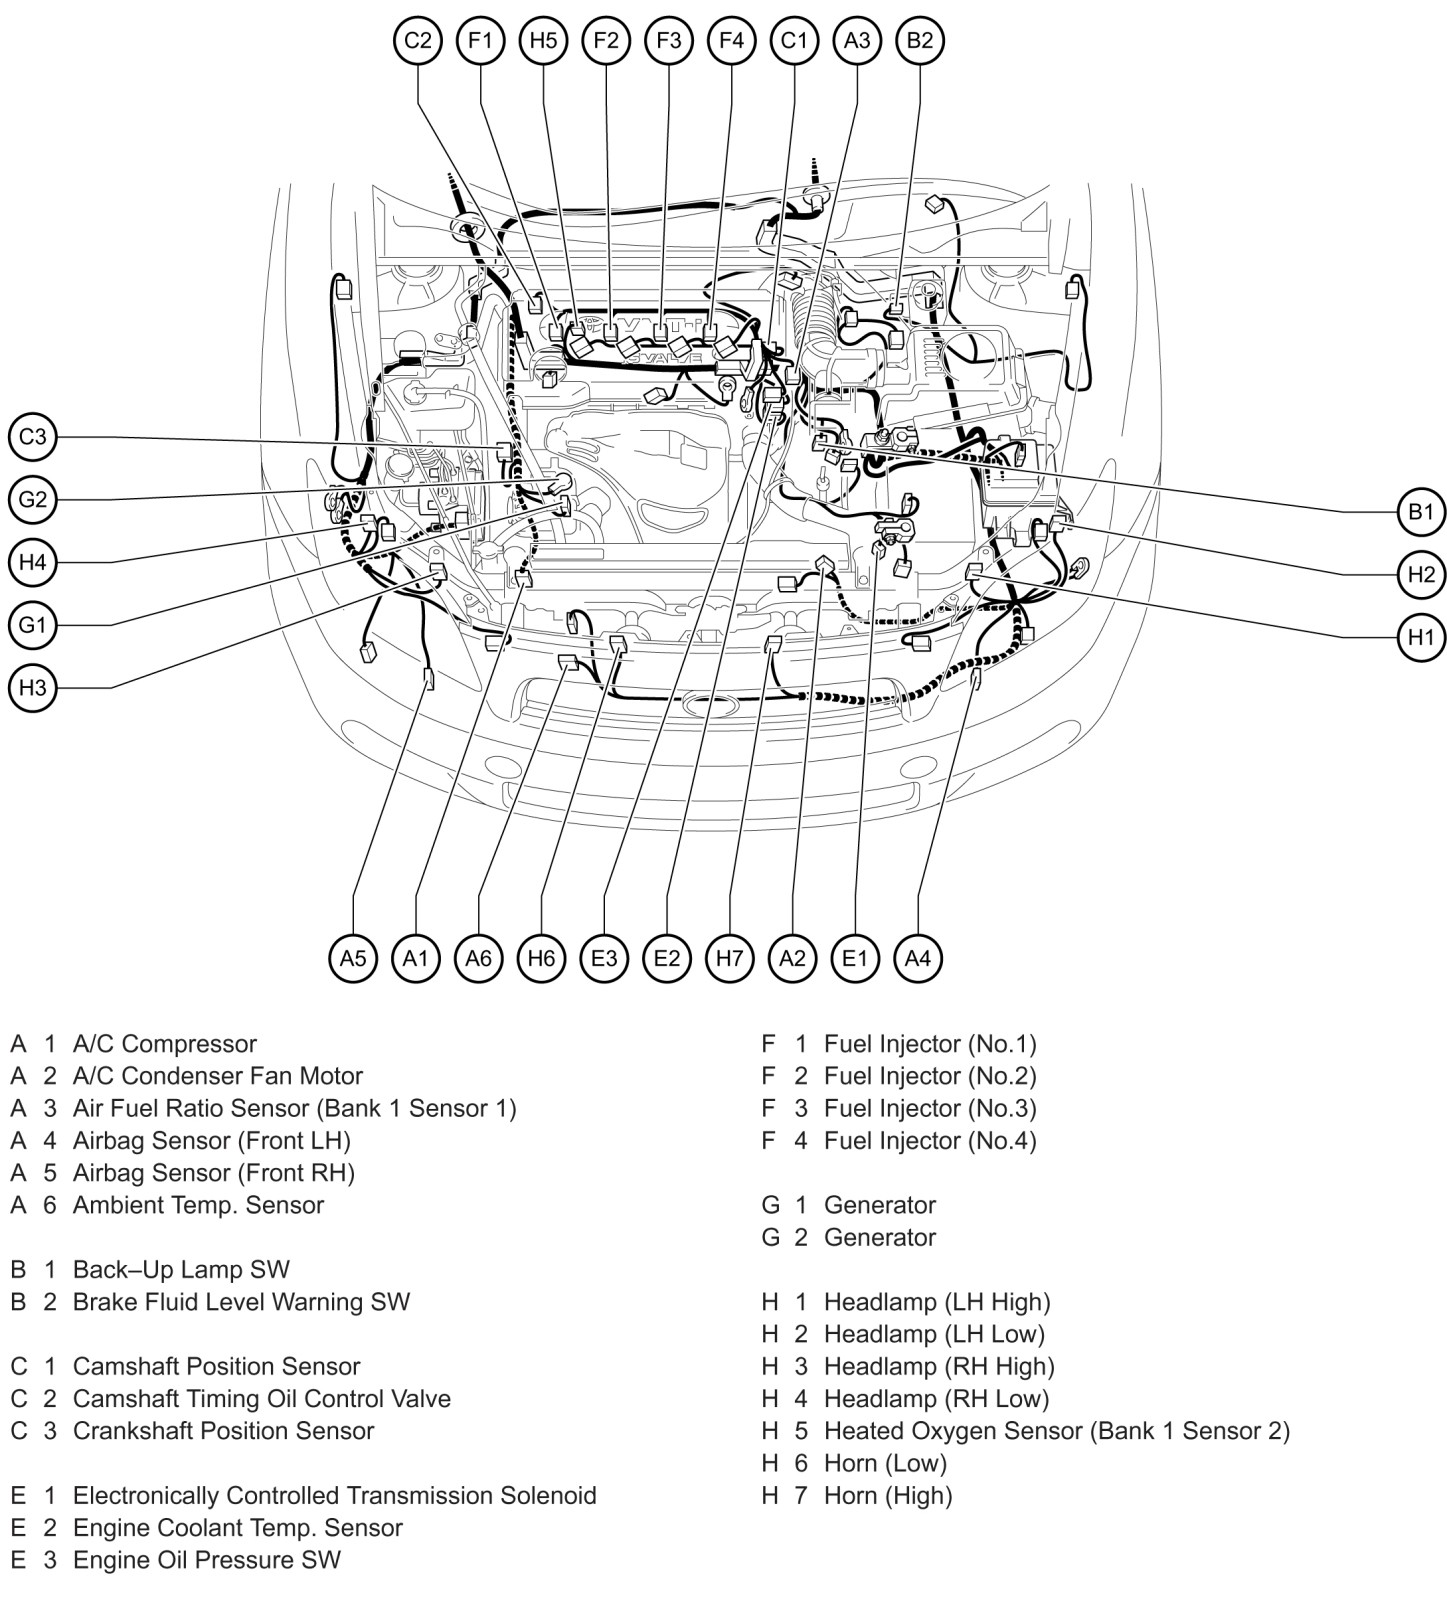 Toyota Scion Tc Fuse Box Diagram Diy Enthusiasts Wiring